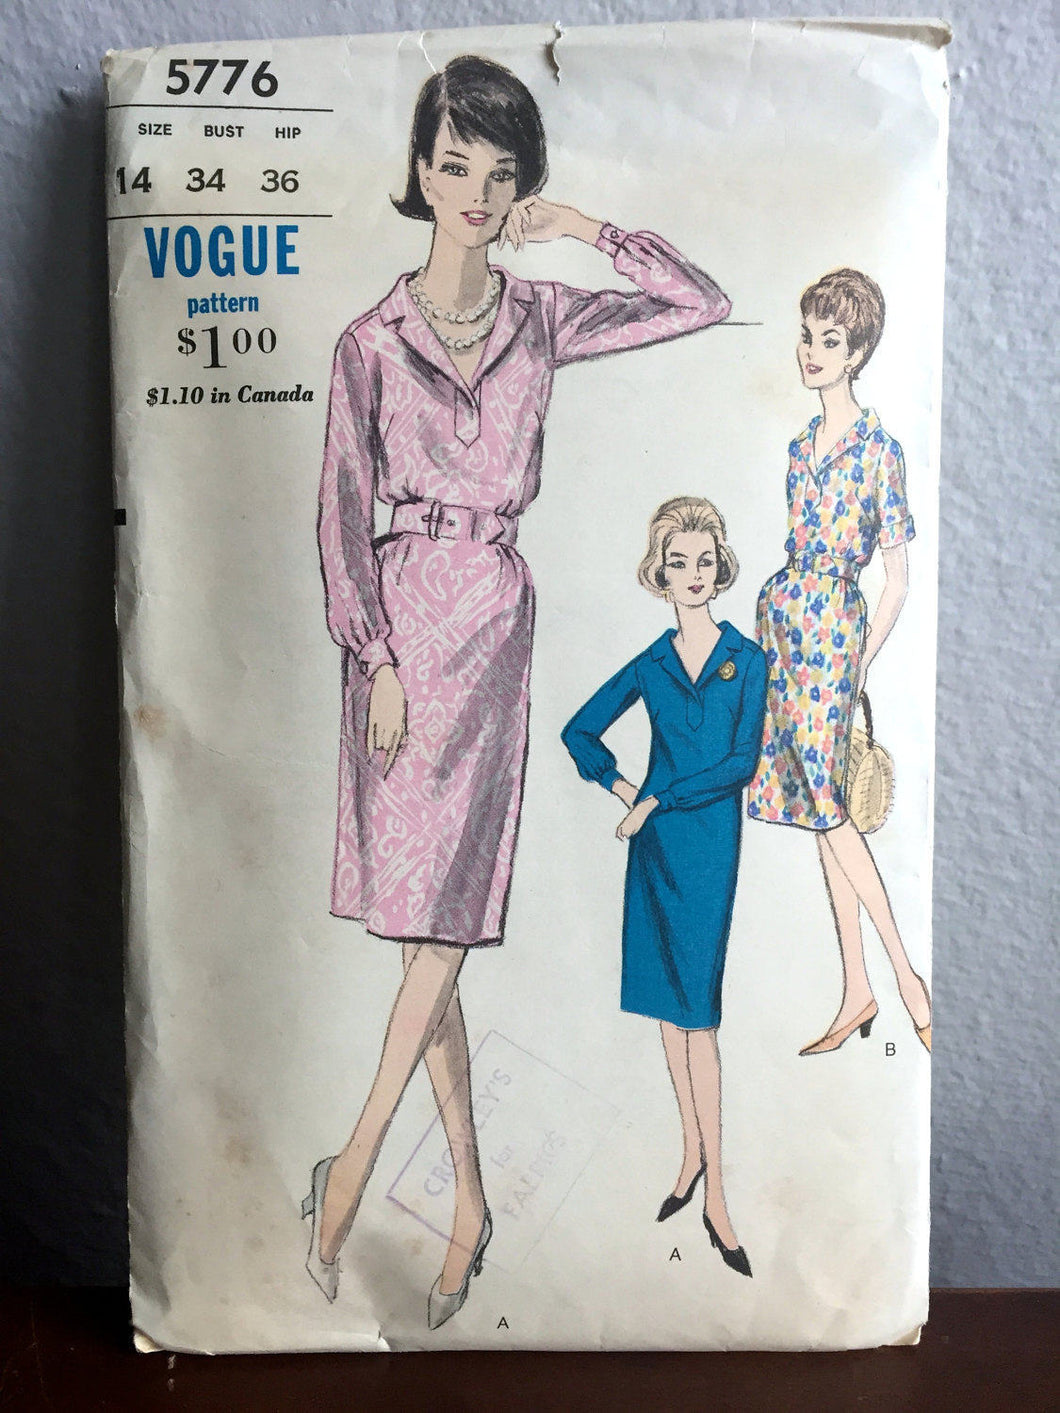 1960's Vogue Relaxed Day Dress with Two Sleeve Lengths Pattern - Bust 34